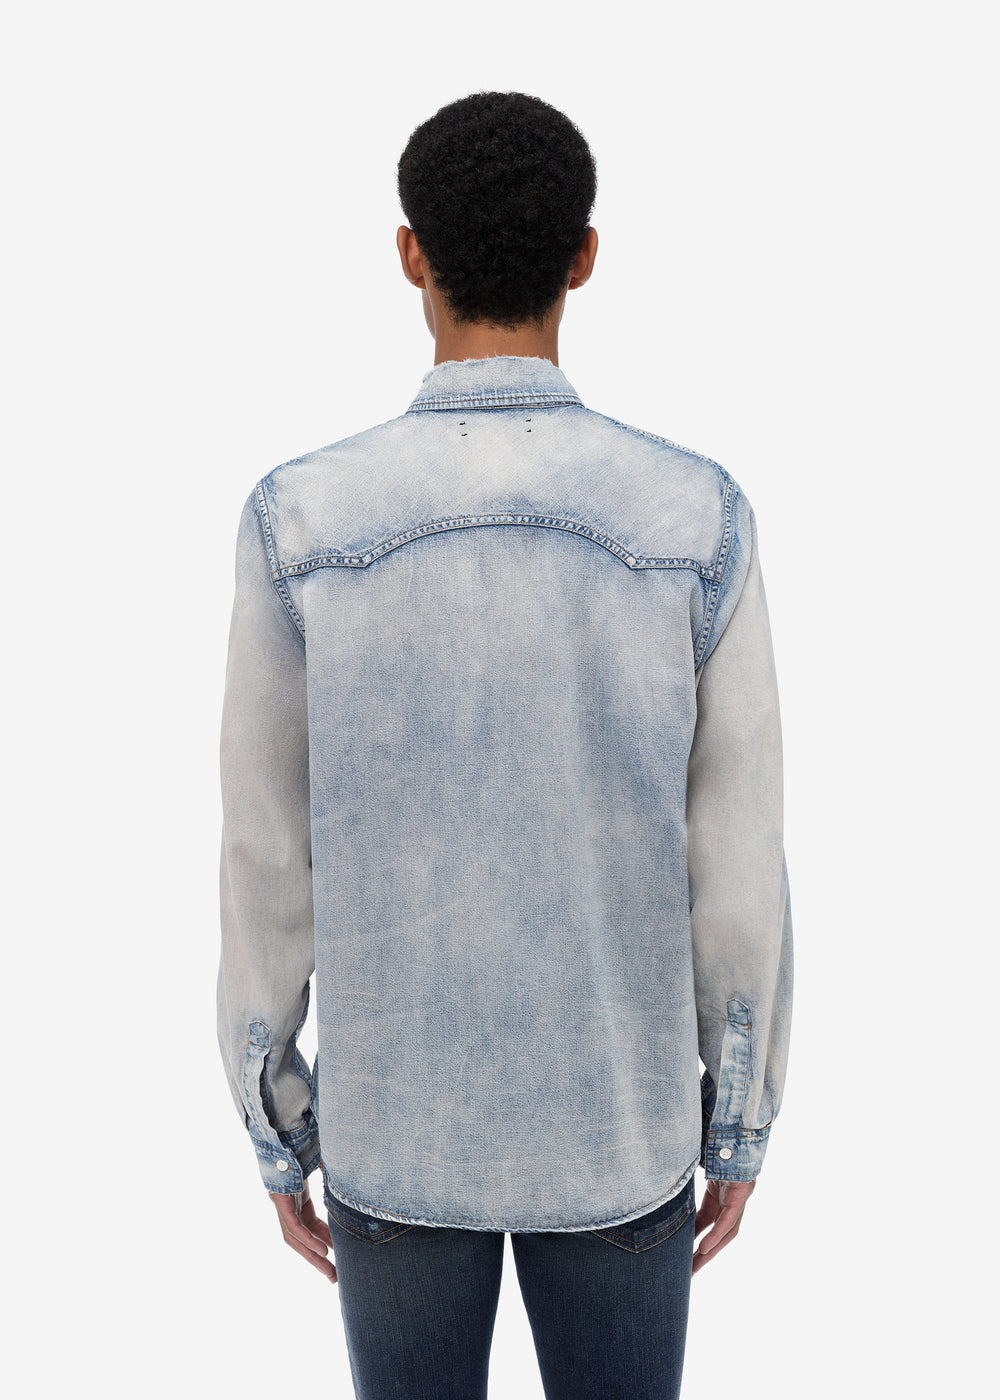 EXCLUSIVE BASIC DENIM SHIRT - CLAY INDIGO